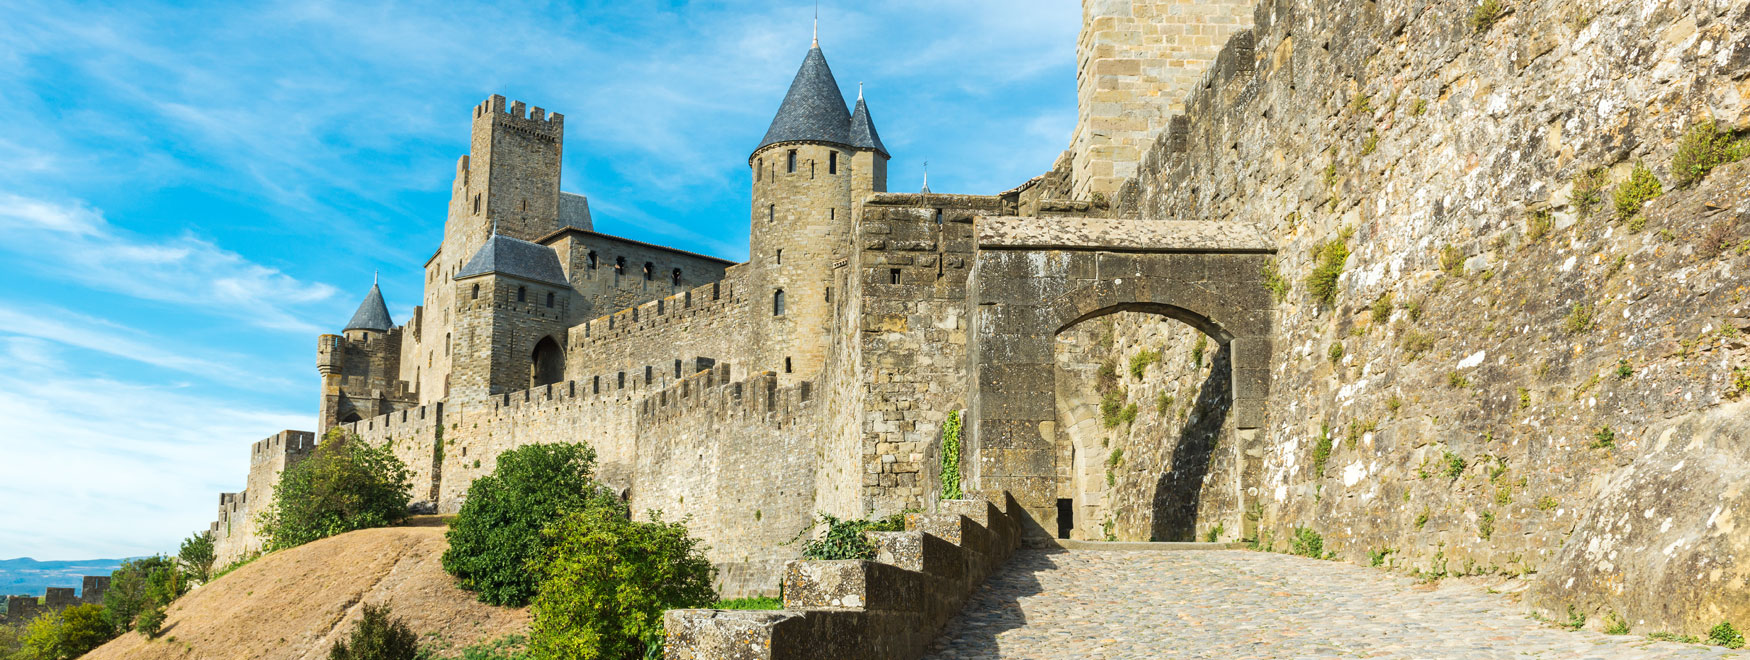 Excursion to Carcassonne